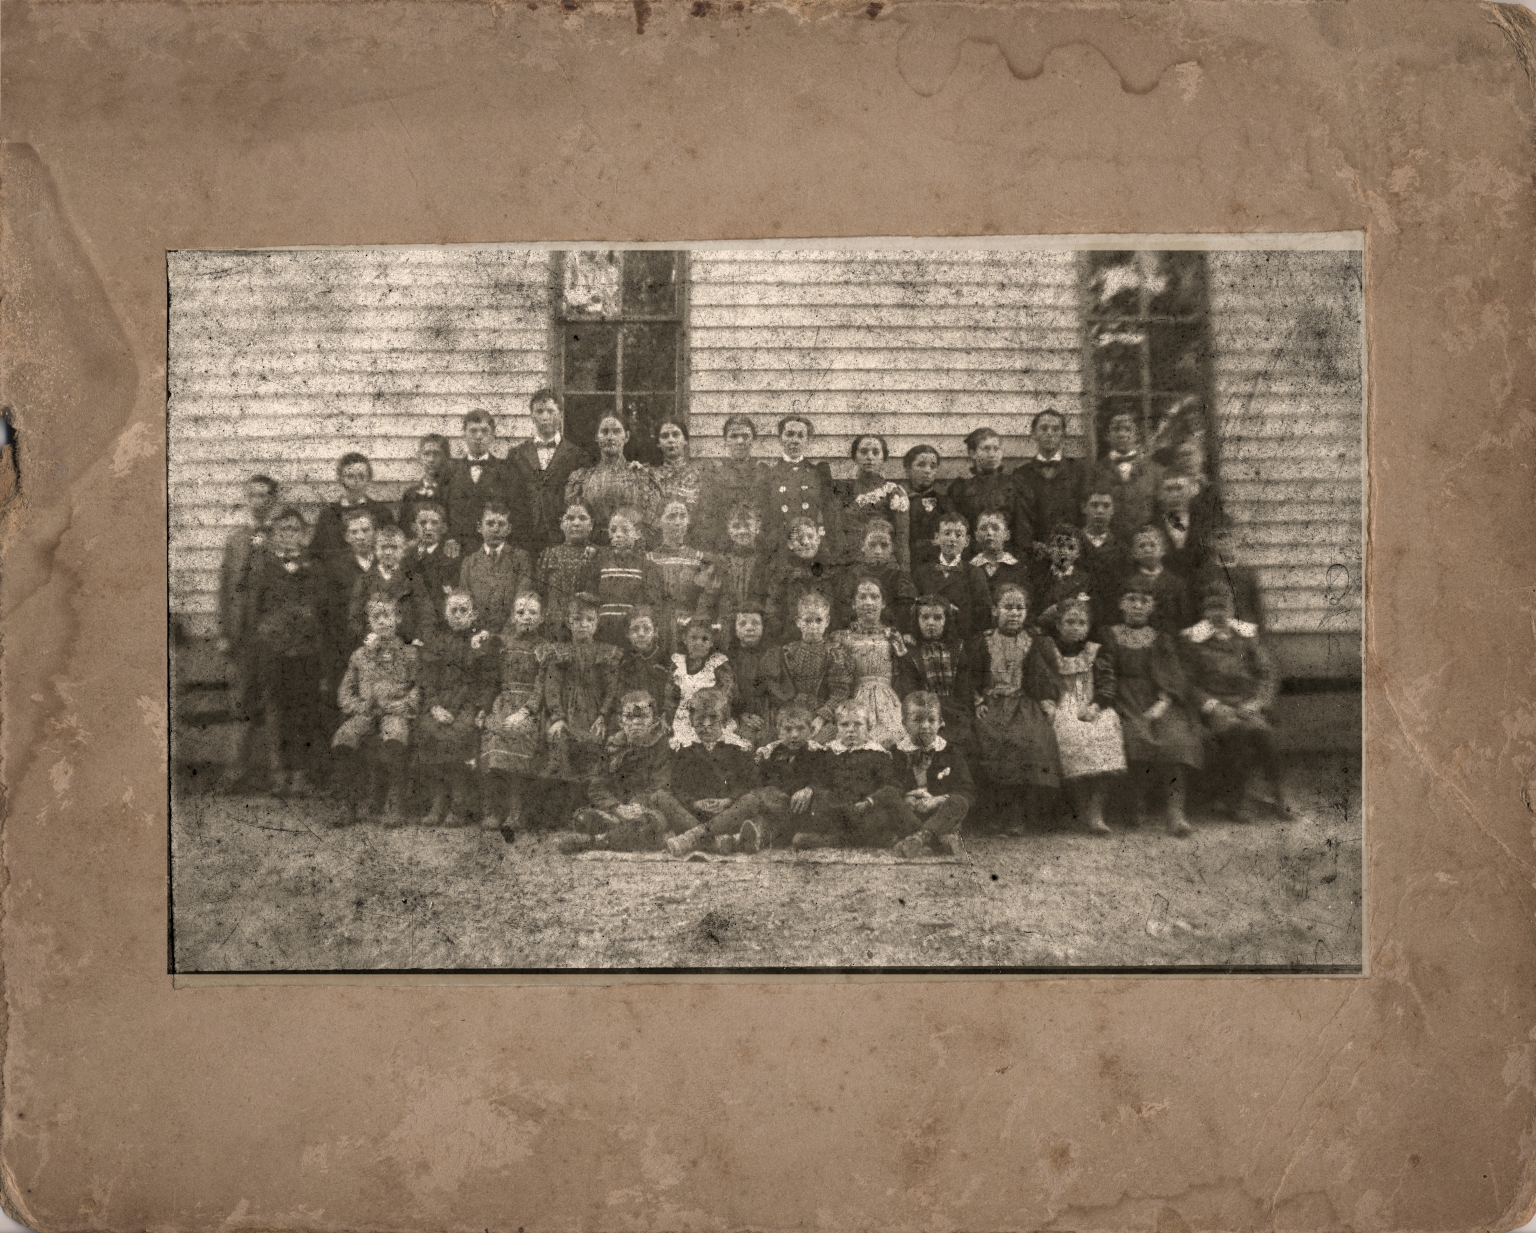 Hendron School students and faculty